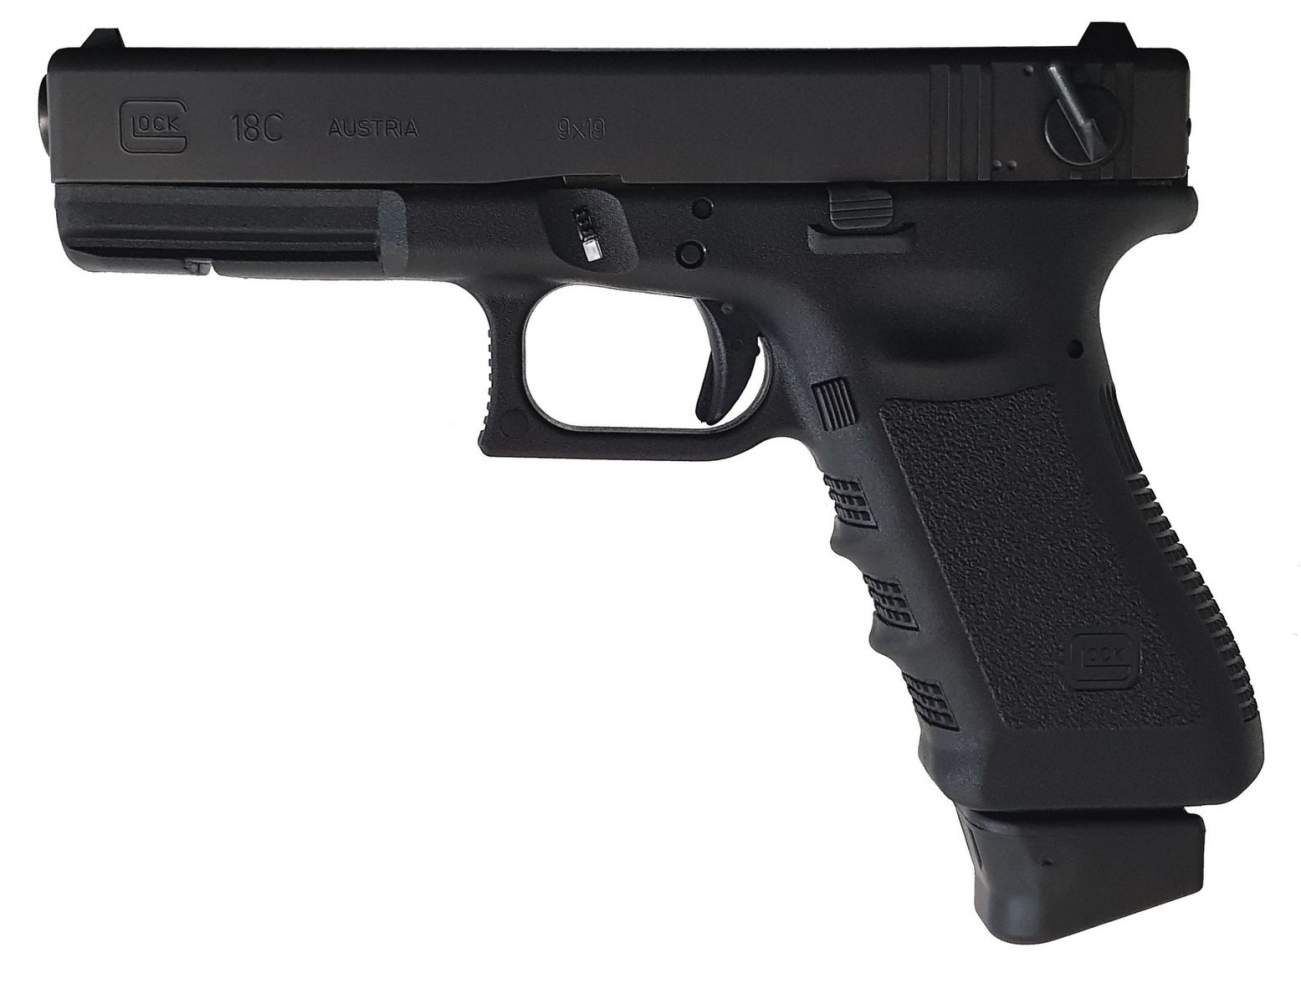 The Glock 18: The Machine Gun That You Can't Buy